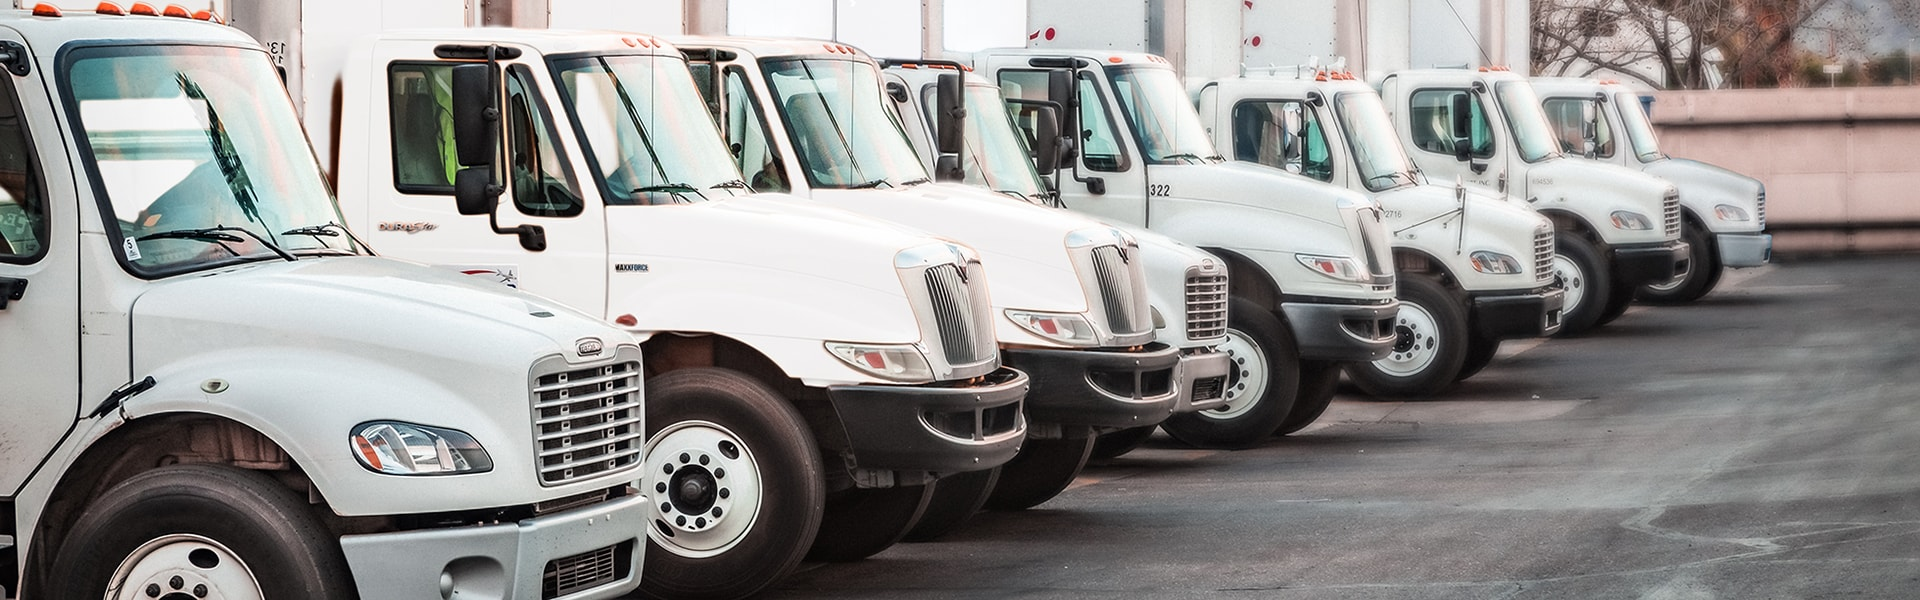 commercial fleet services phoenix az